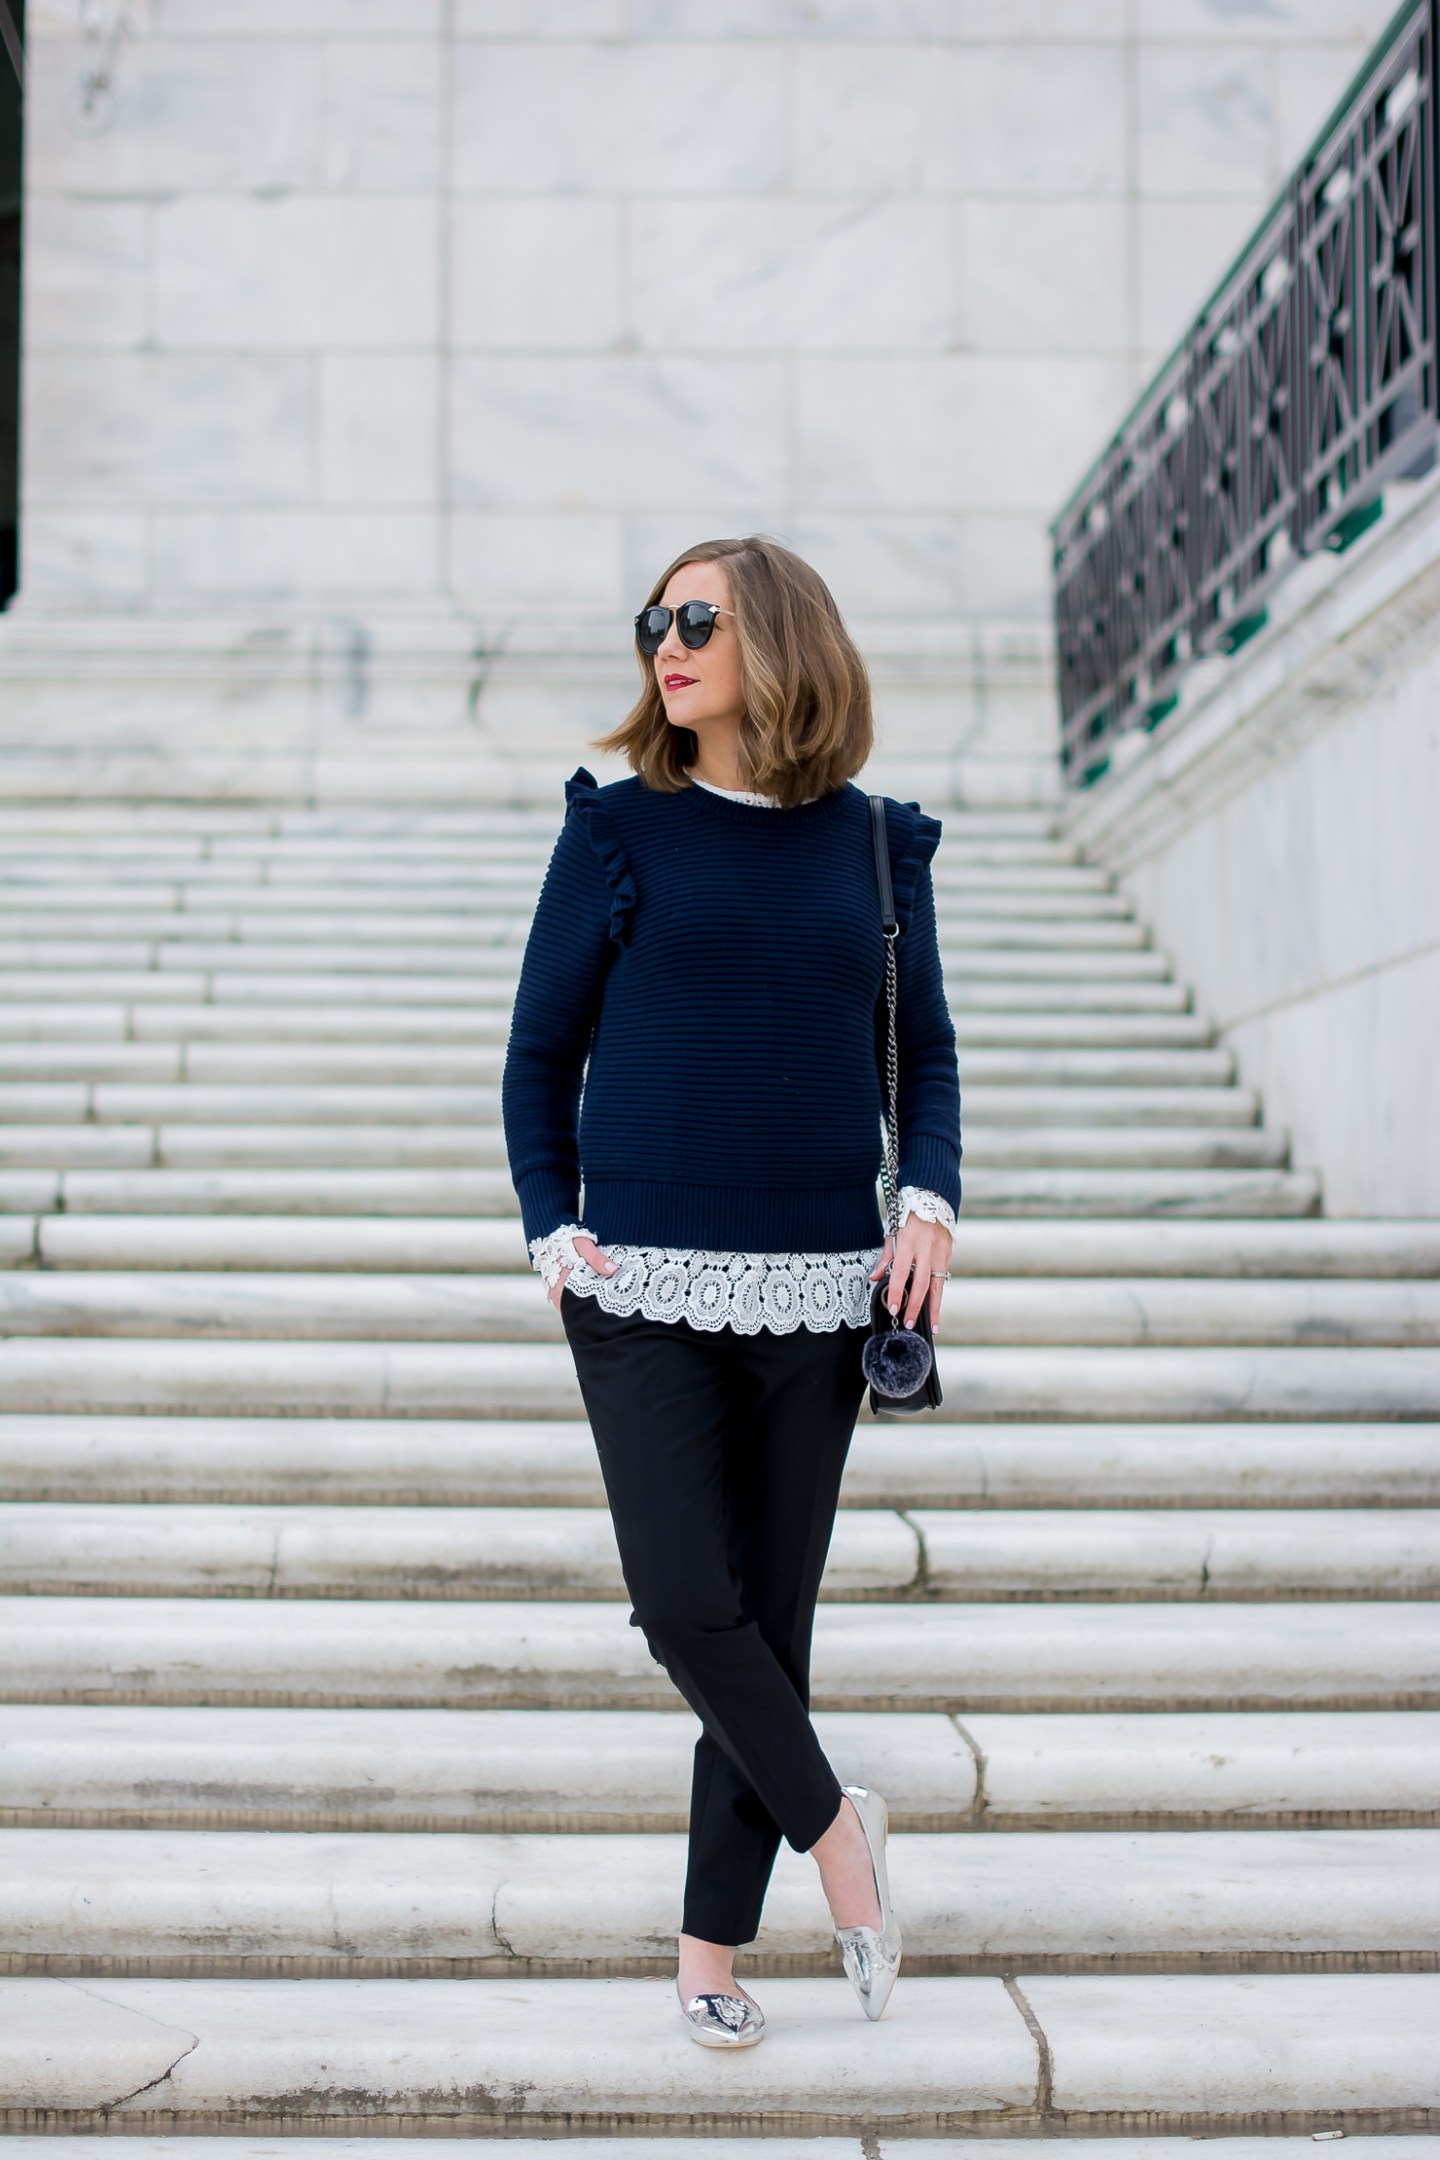 banana-republic-ruffle-shoulder-sweater-shein-lace-top-black-express-ankle-pants-asos-silver-tassel-loafers-office-appropriate-lace-and-ruffles